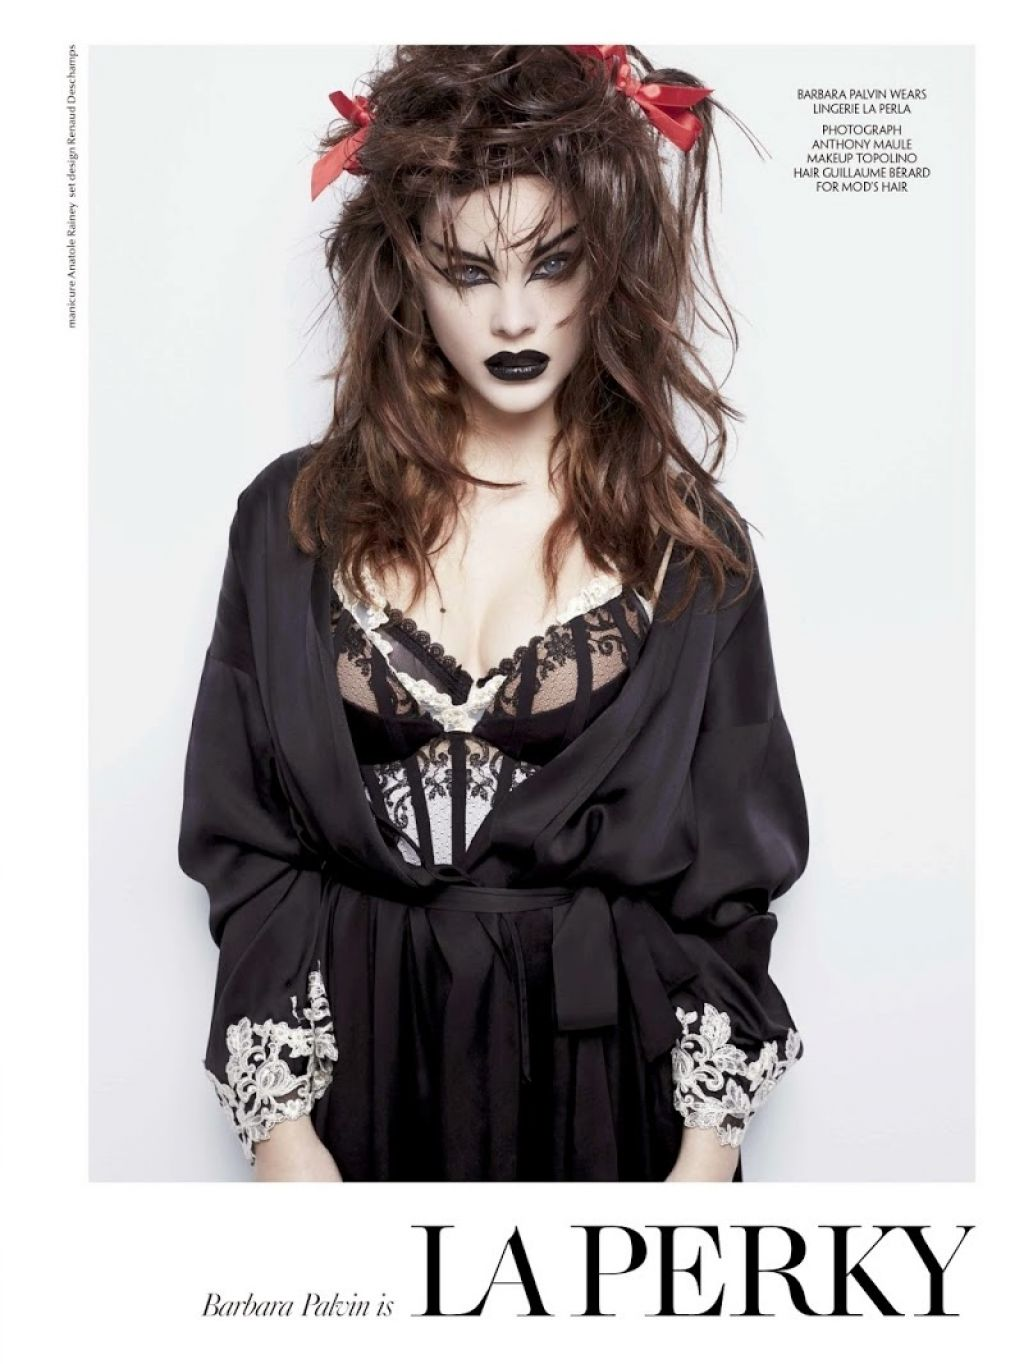 Barbara Palvin – CR Fashion Book #6 2015